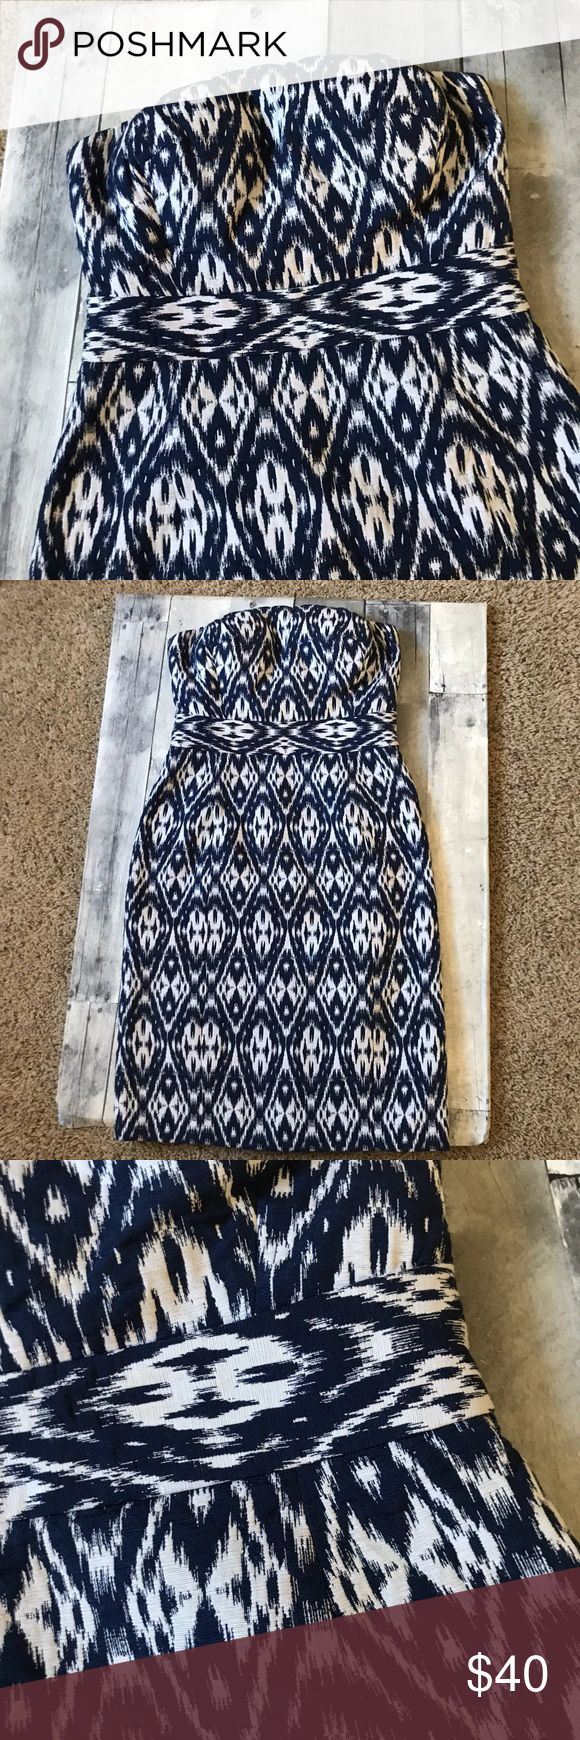 "Banana Republic Navy & White Ikat Print Dress -554 Size 2 Banana Republic Navy & White Ikat Print Strapless Dress.  A great special occasion dress!  Perfect for weddings, showers or a special night out!  Preloved in excellent condition.  Measures 15"" armpit to armpit, 14"" across the waist and 30.5"" in length.  Pet and smoke free home.  Offers Welcome. Banana Republic Dresses Strapless"